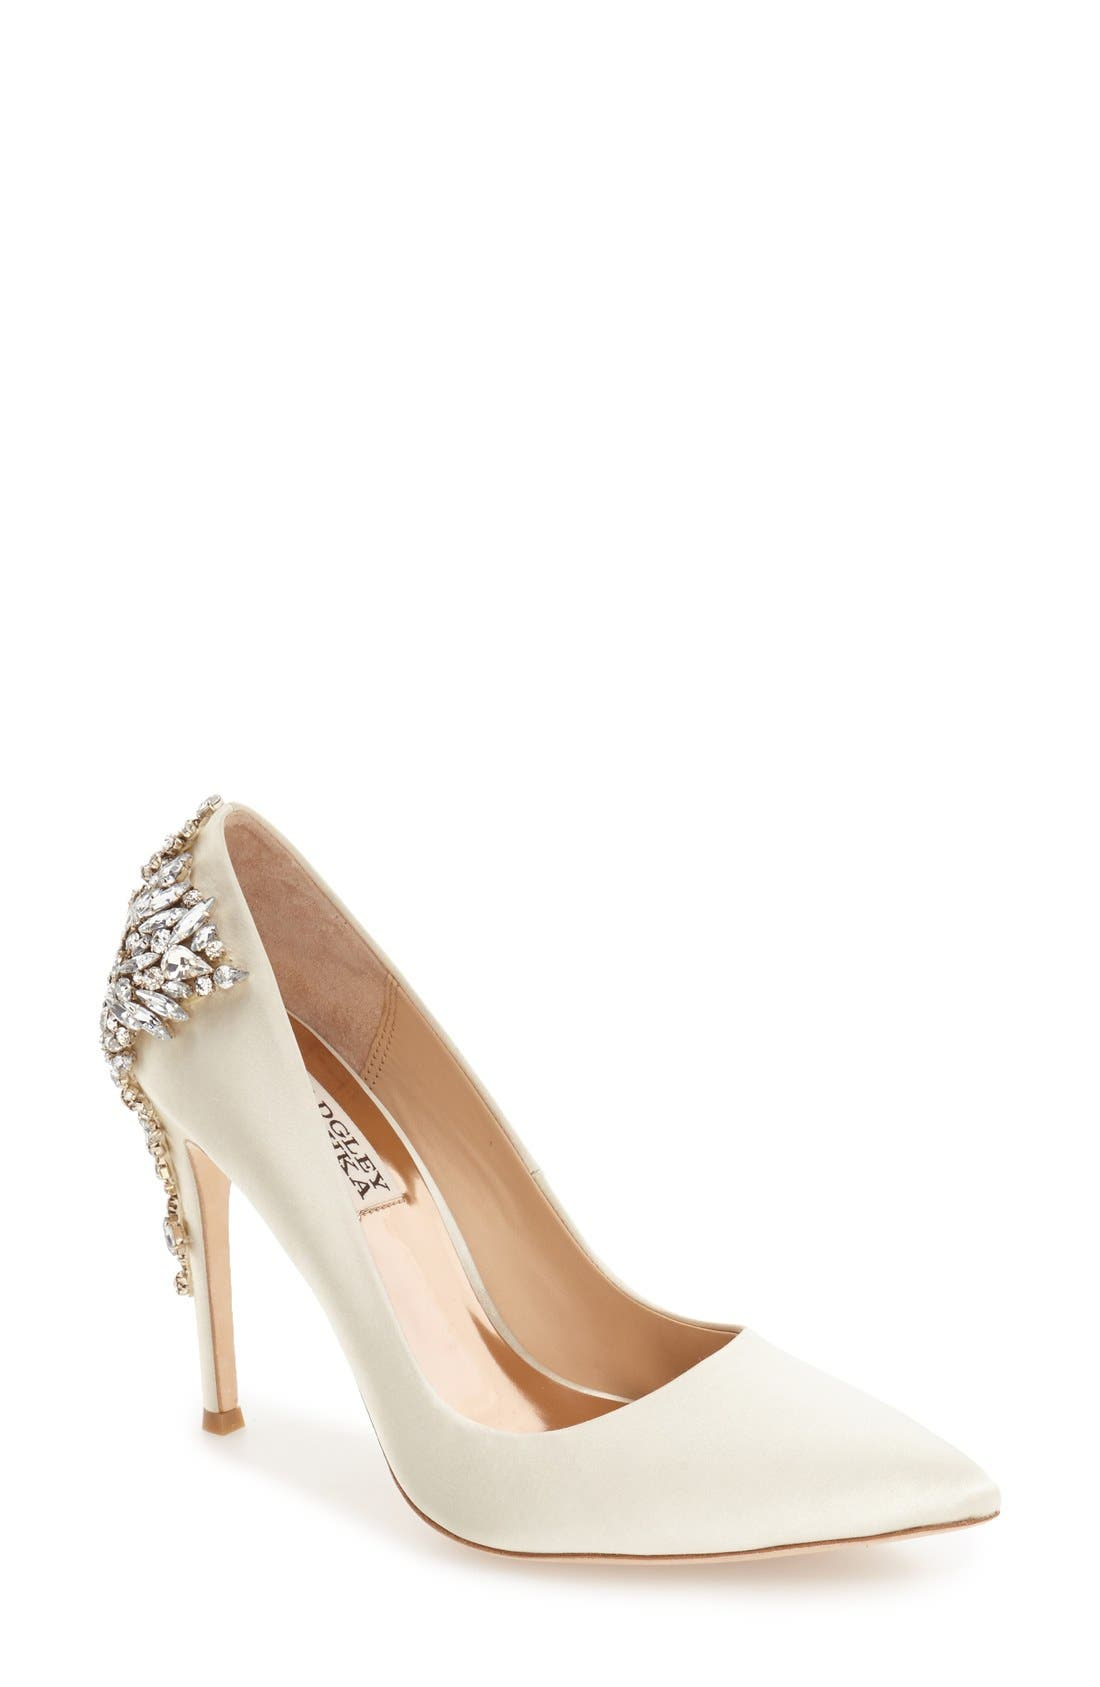 'Gorgeous' Crystal Embellished Pointy Toe Pump,                         Main,                         color, Ivory Satin